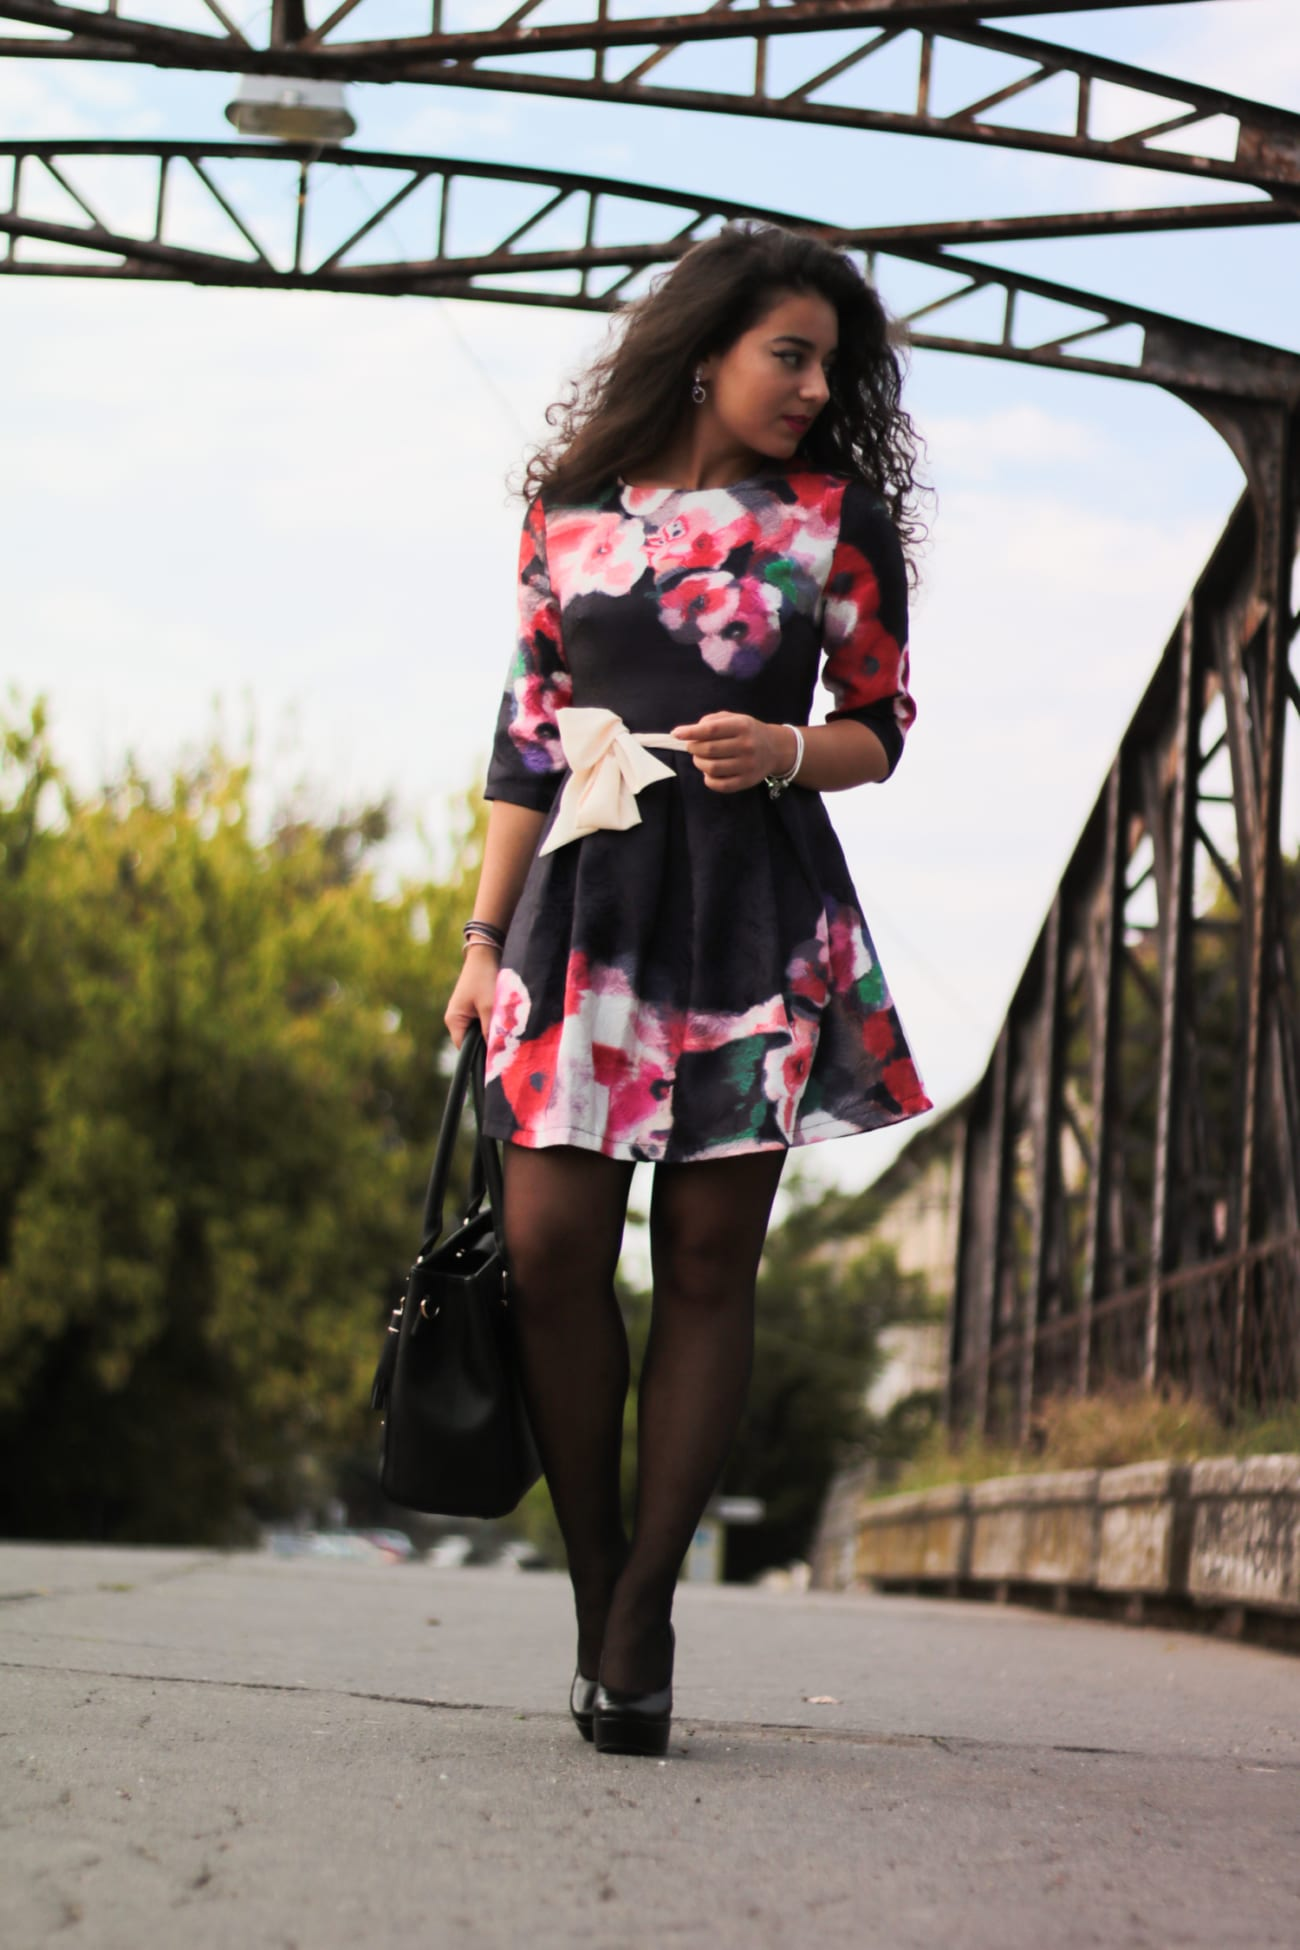 top-fashion-pareri-roxi-rose-timisoara-fashion-blogger-rochia-cu-flori-floral-dress-review-favorite-fashion-item-and-why-clothing-piece